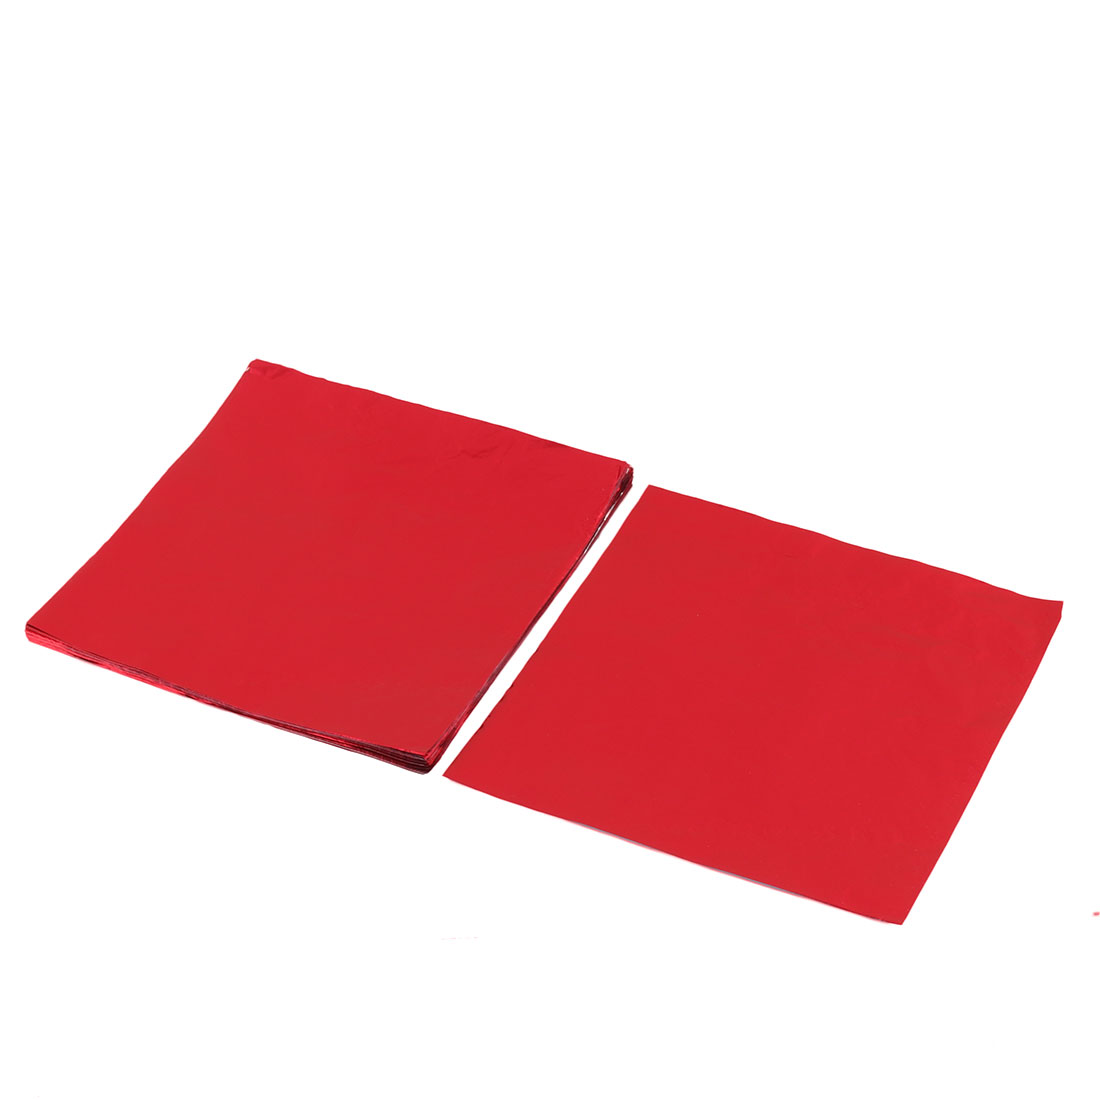 Aluminum Foil Baking Candy Chocolate Wrappers Tinfoil Paper Red 8 x 8cm 100pcs